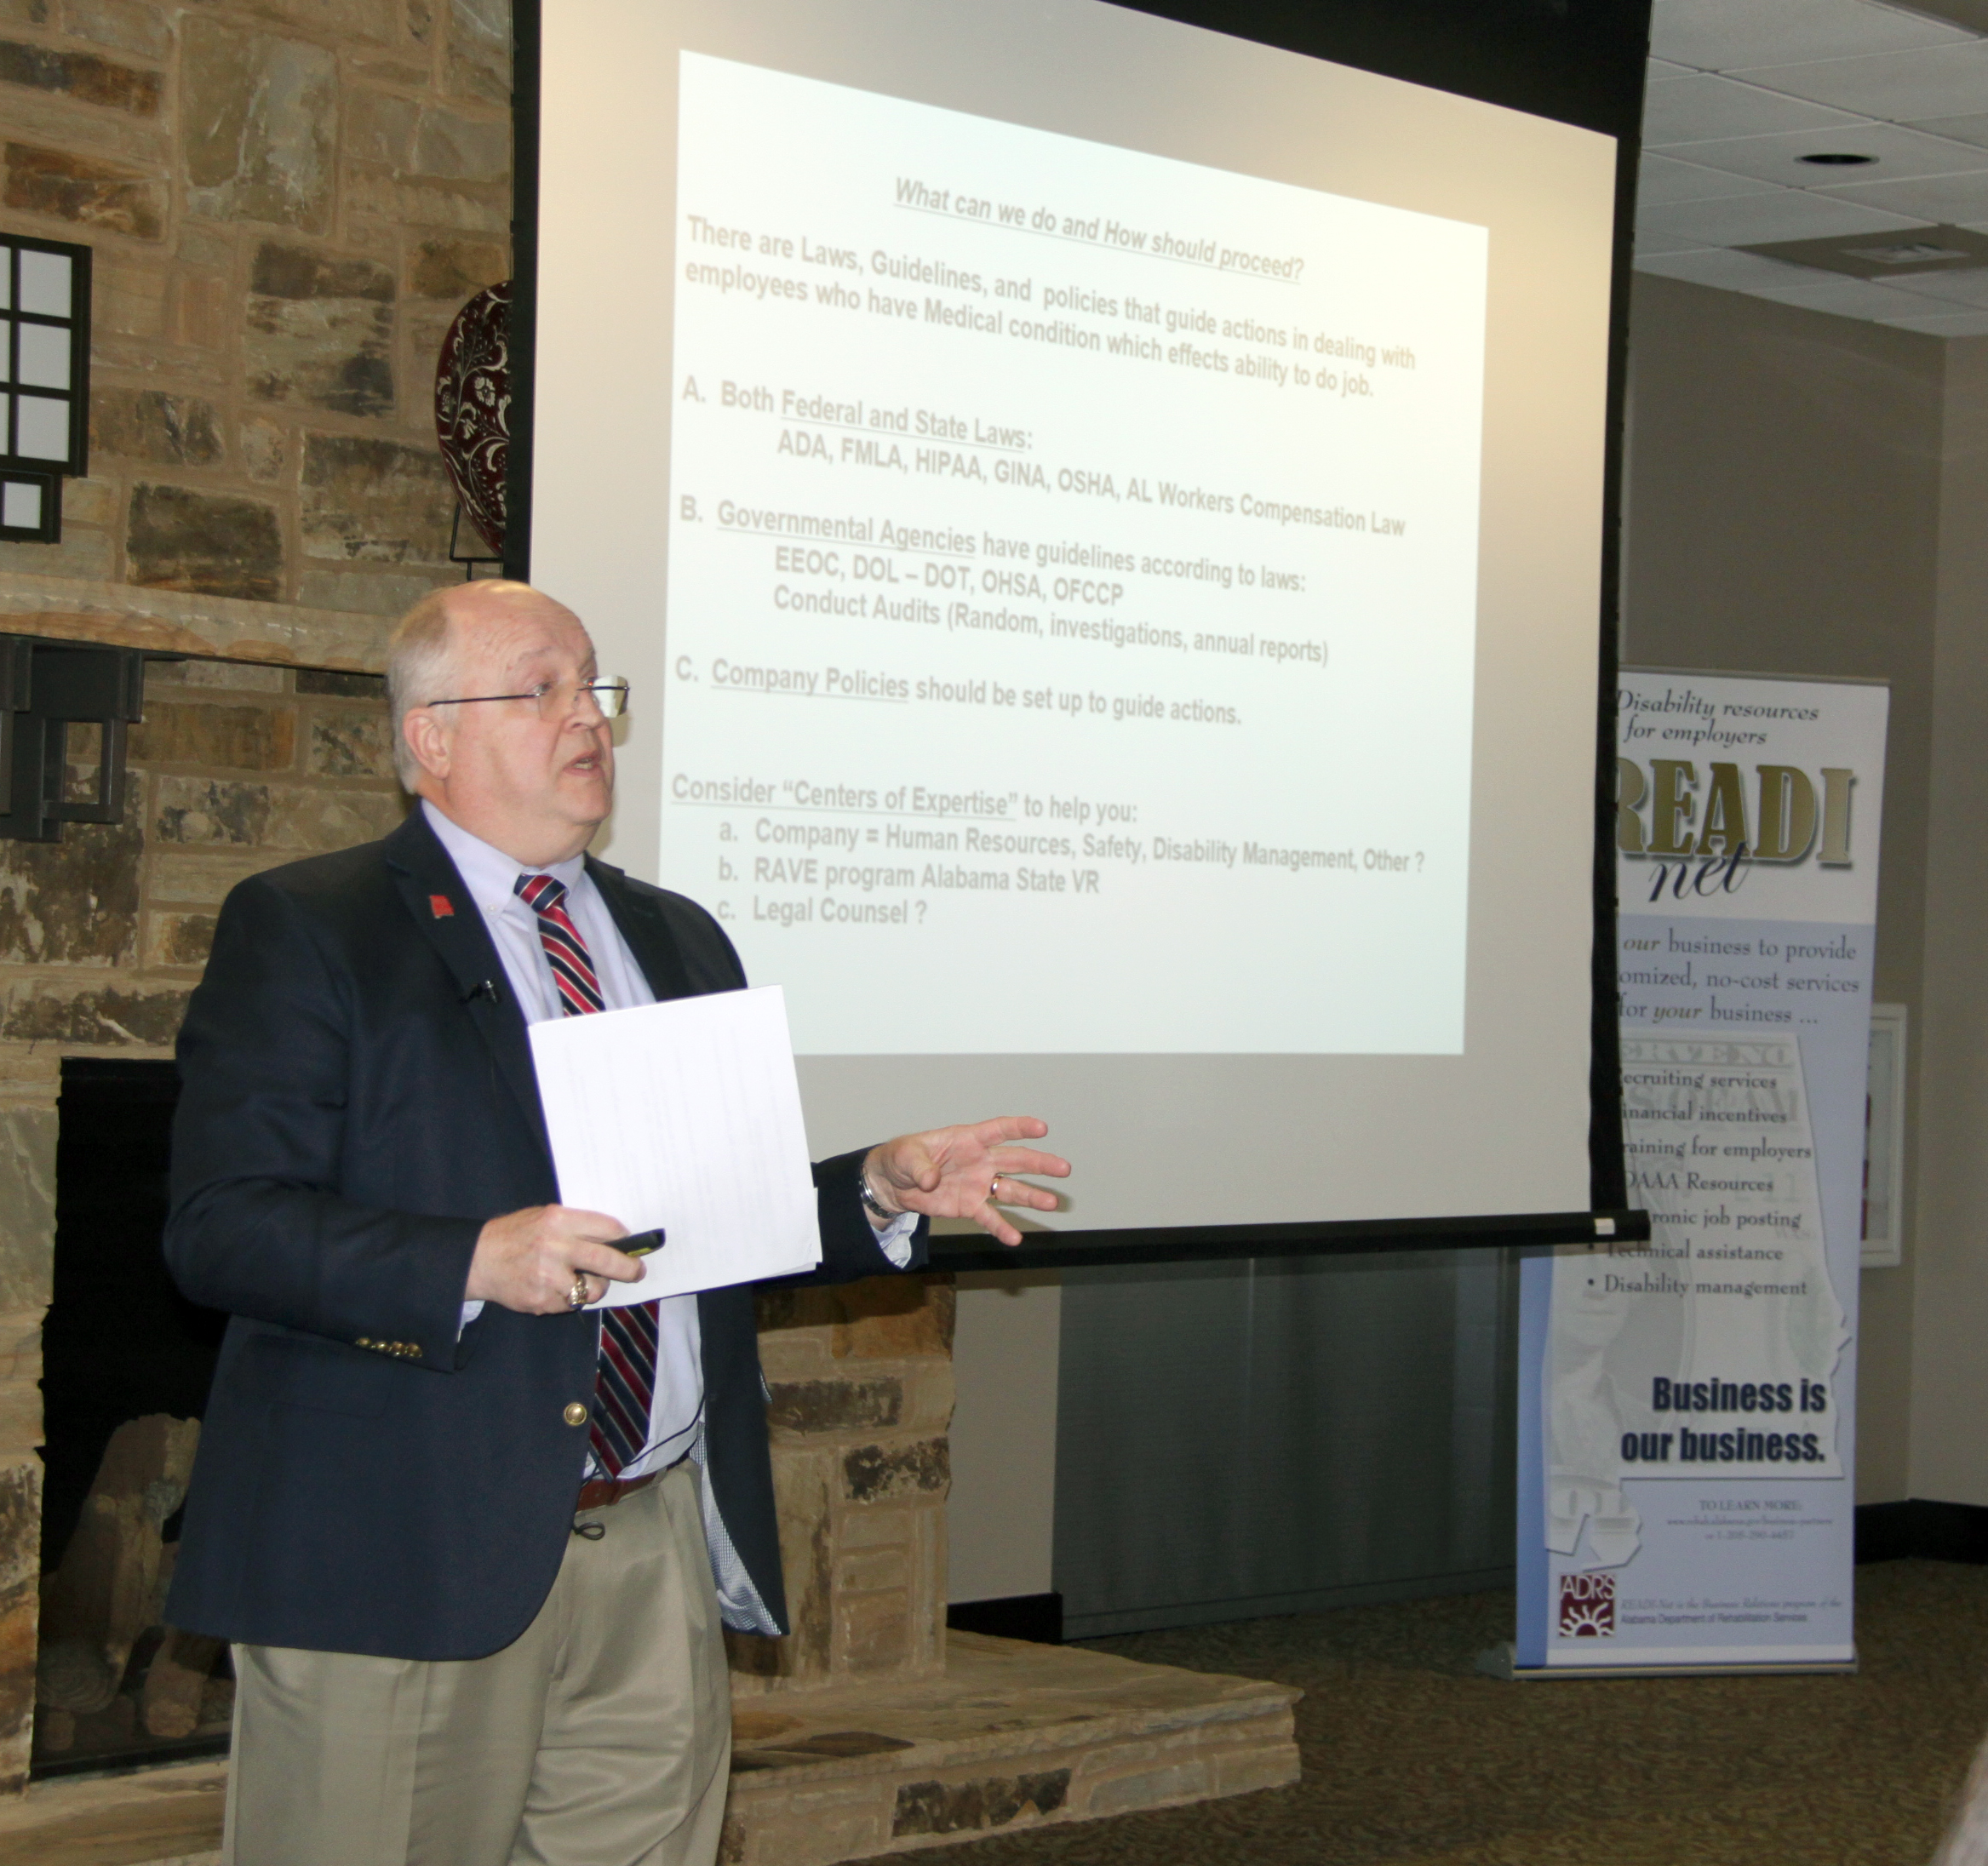 Jeff Cofield, Who Works With Alabama Power, Offers The Employer Perspective  During The Employer